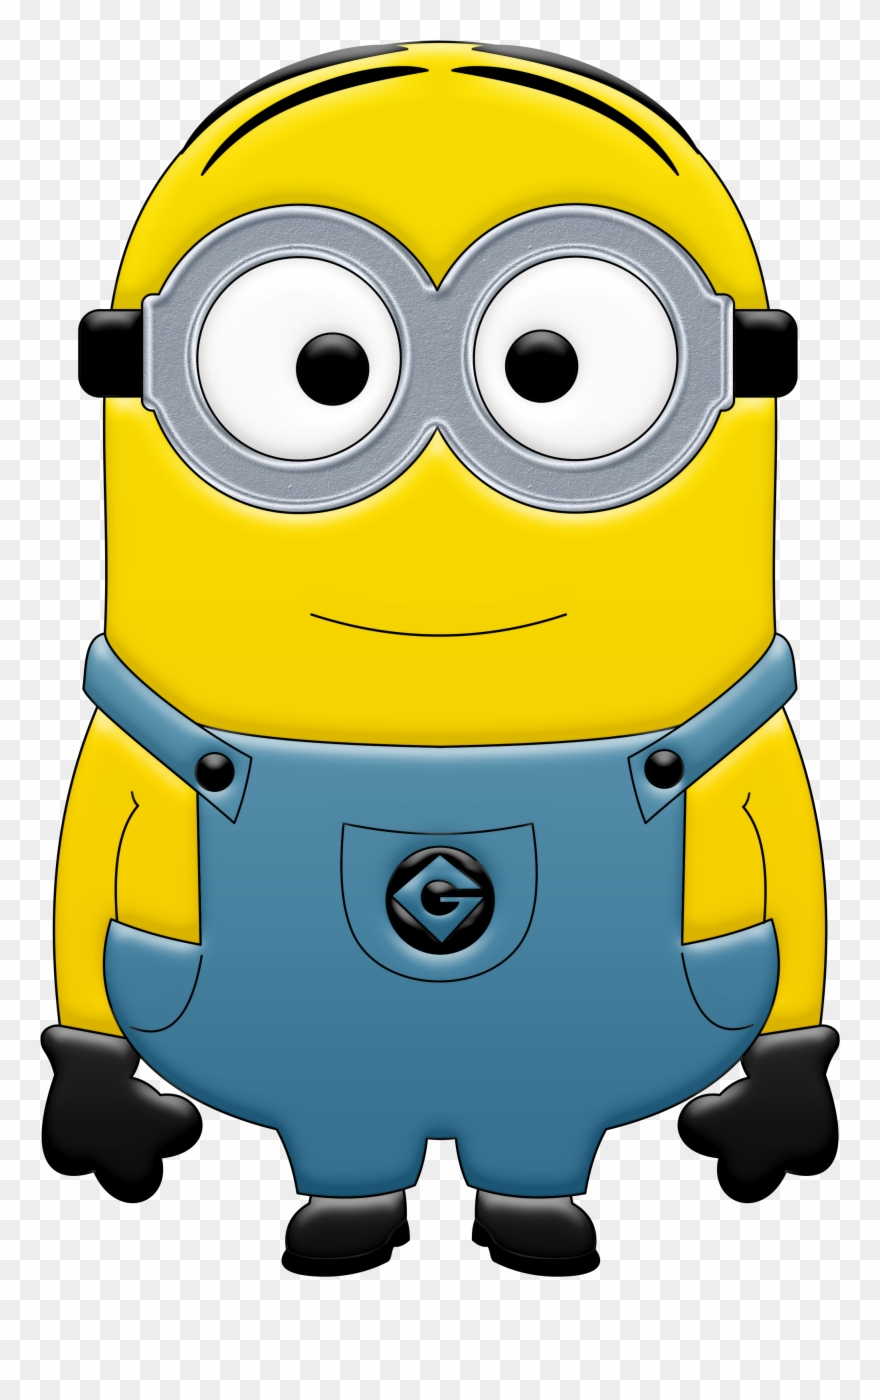 minions clipart yellow minion